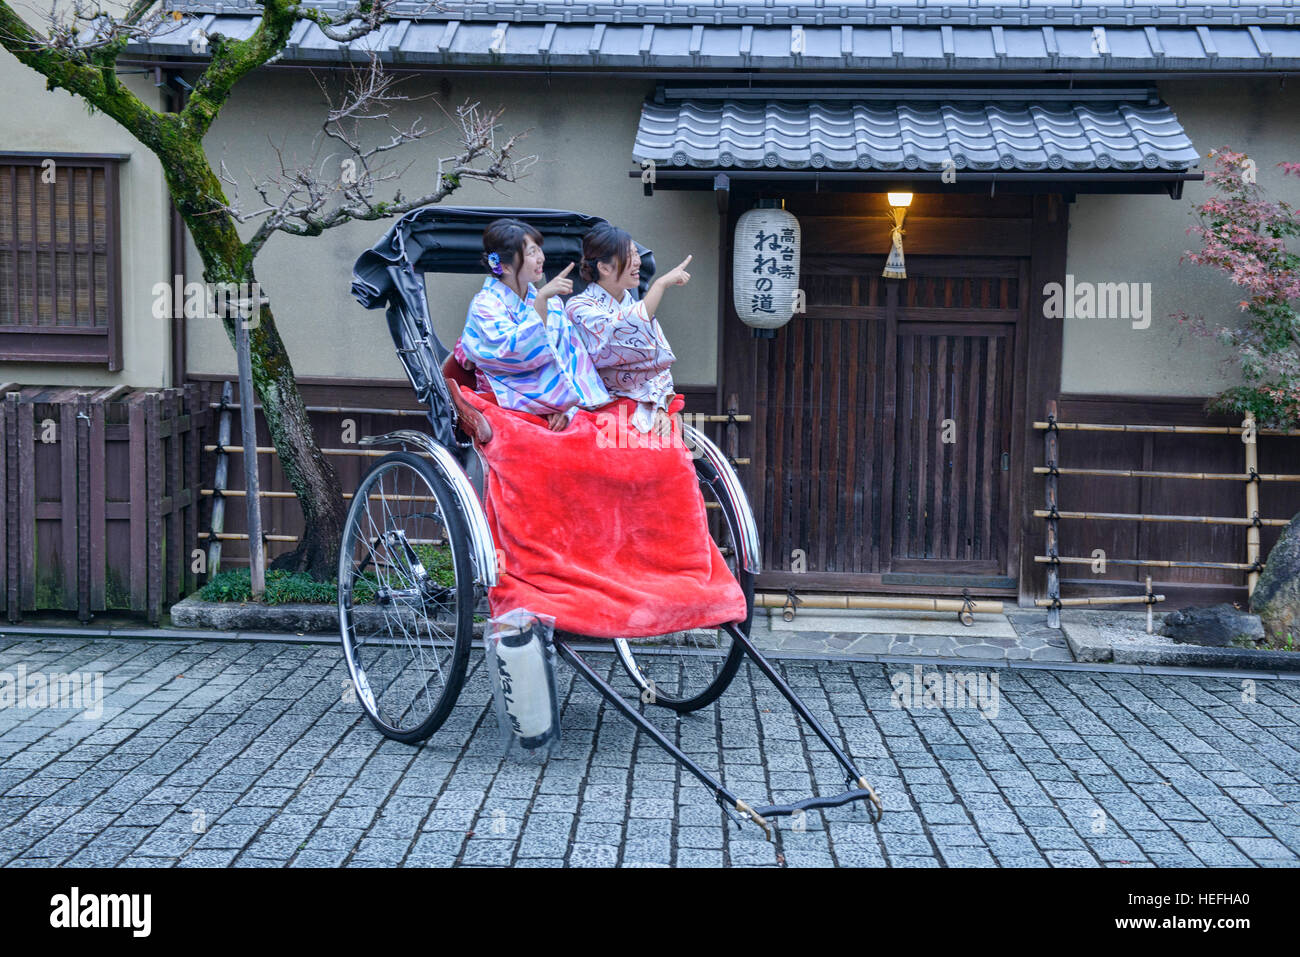 Sightseeing by jinrickshaw in Higashiyama, Kyoto, Japan - Stock Image